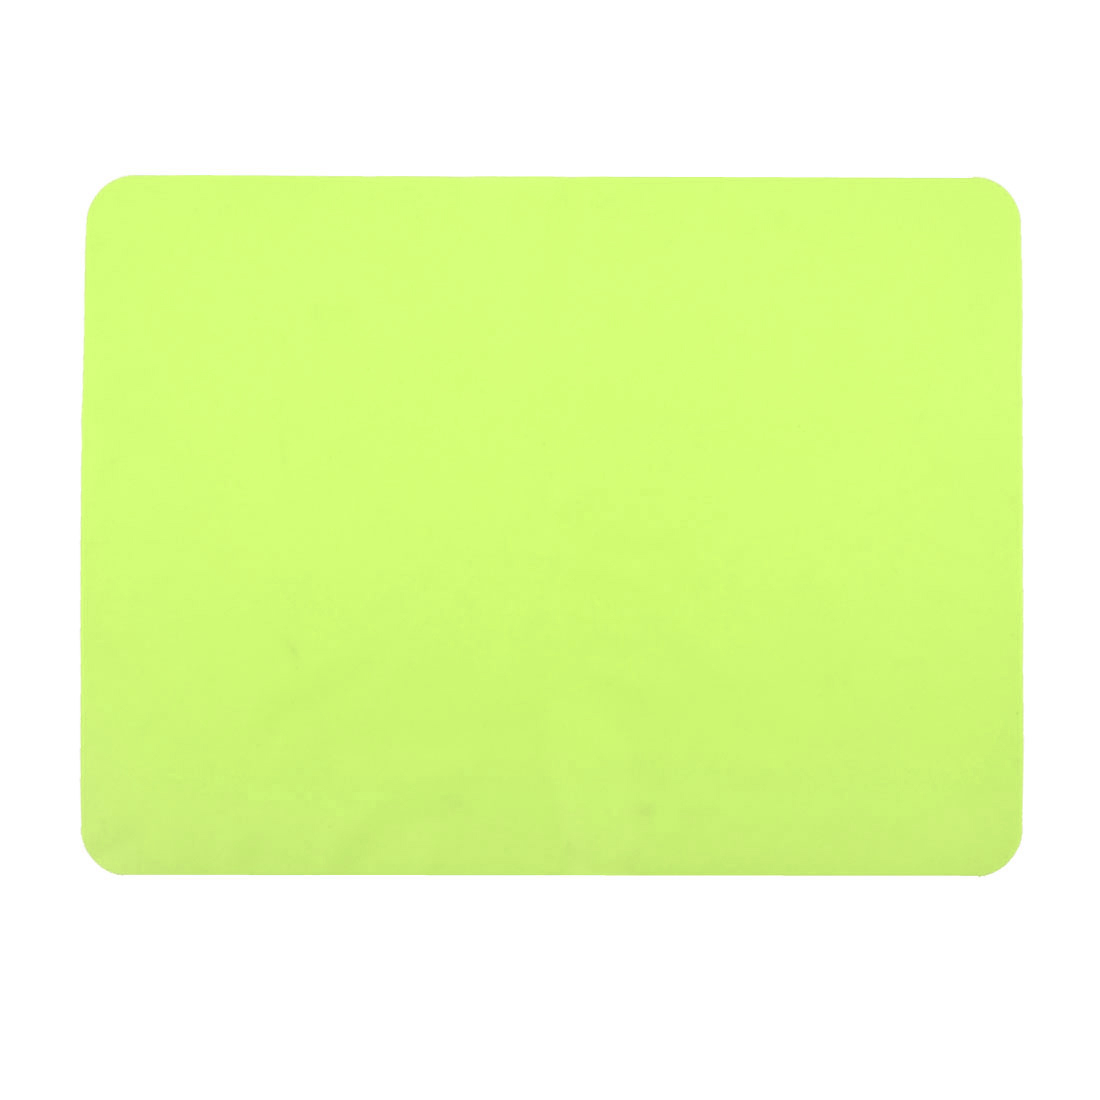 Western Restaurant Silicone Table Heat Resistant Mat Cushion Placemat Green